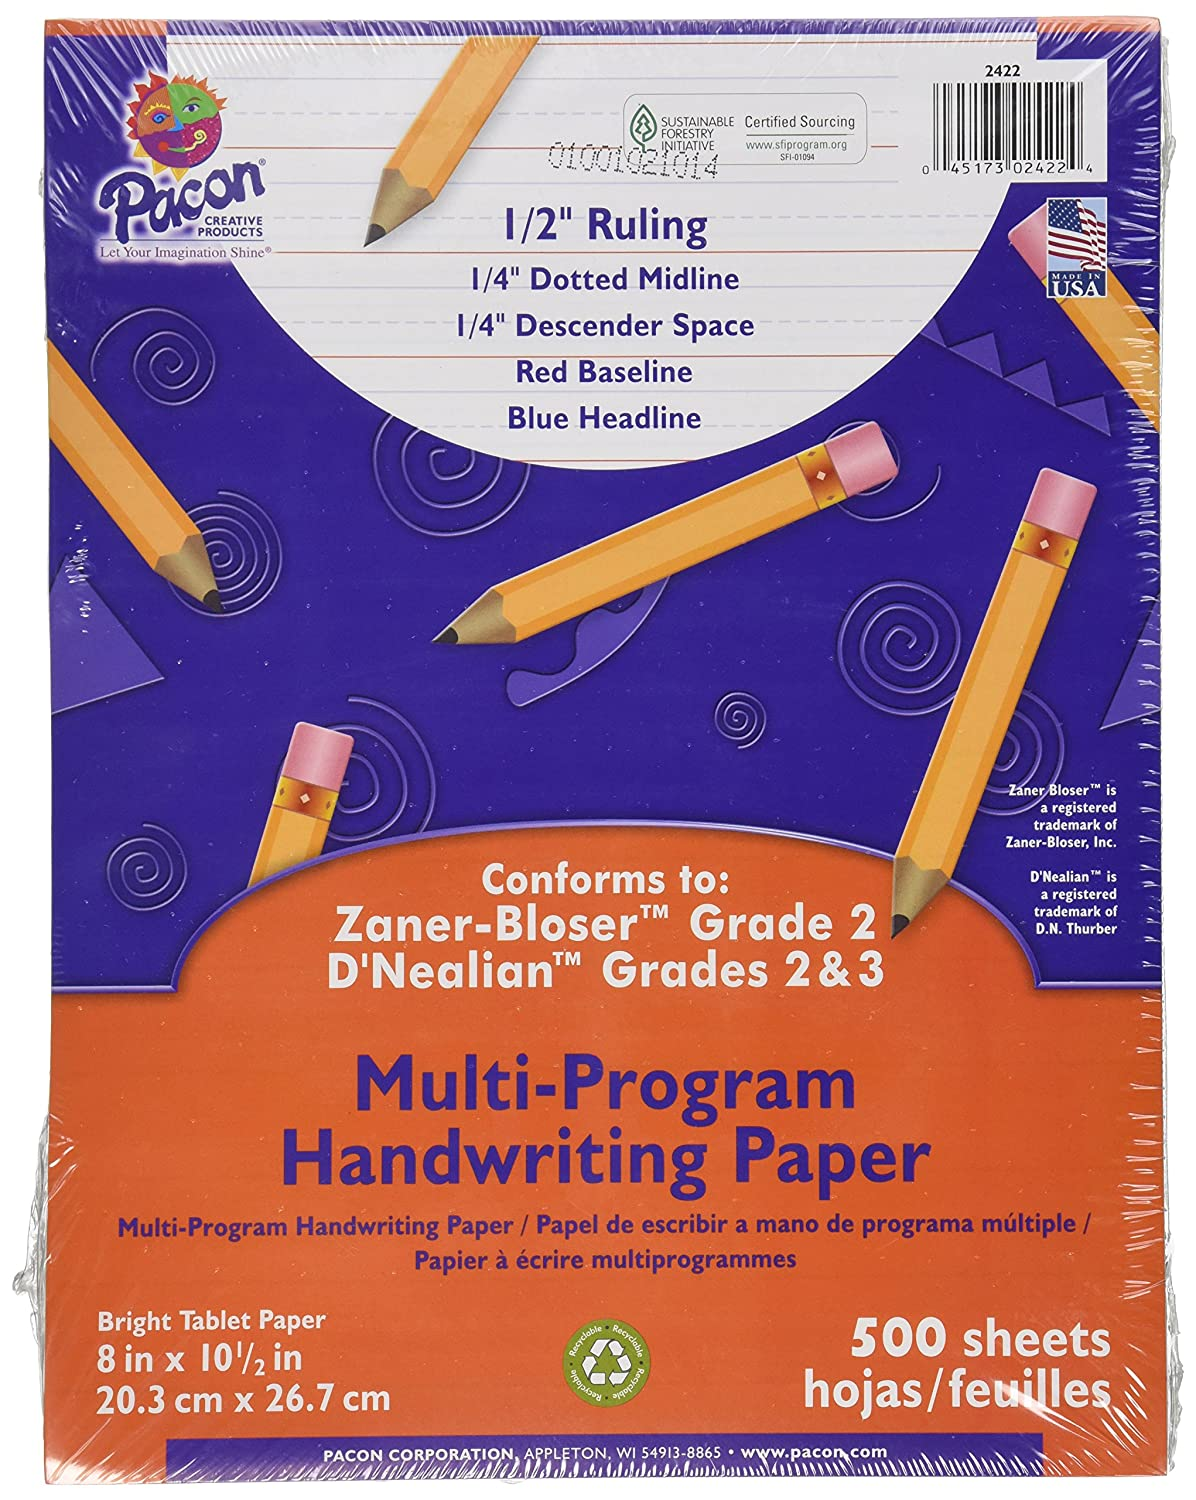 "Pacon Multi-Program Handwriting Paper, 8""X10 1/2"", D'Nealian (Grades 2&3), Zaner-Bloser (Grade 2), 500 Sheets, White"